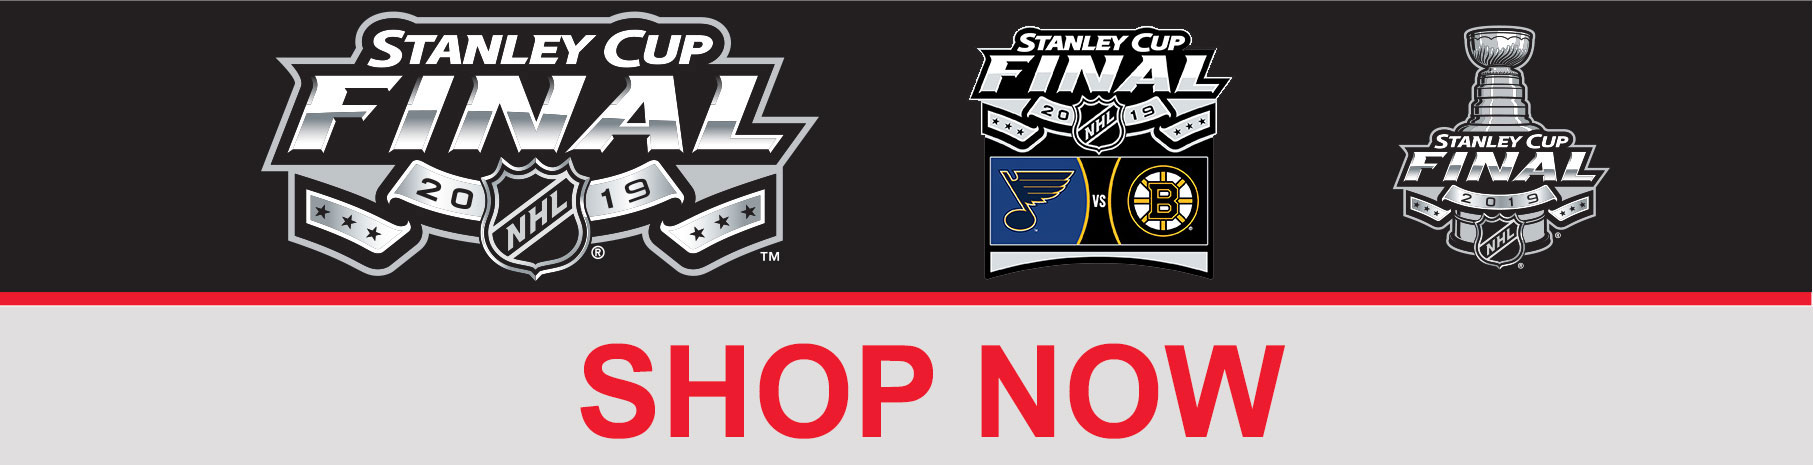 2019 stanley cup pins lanyards